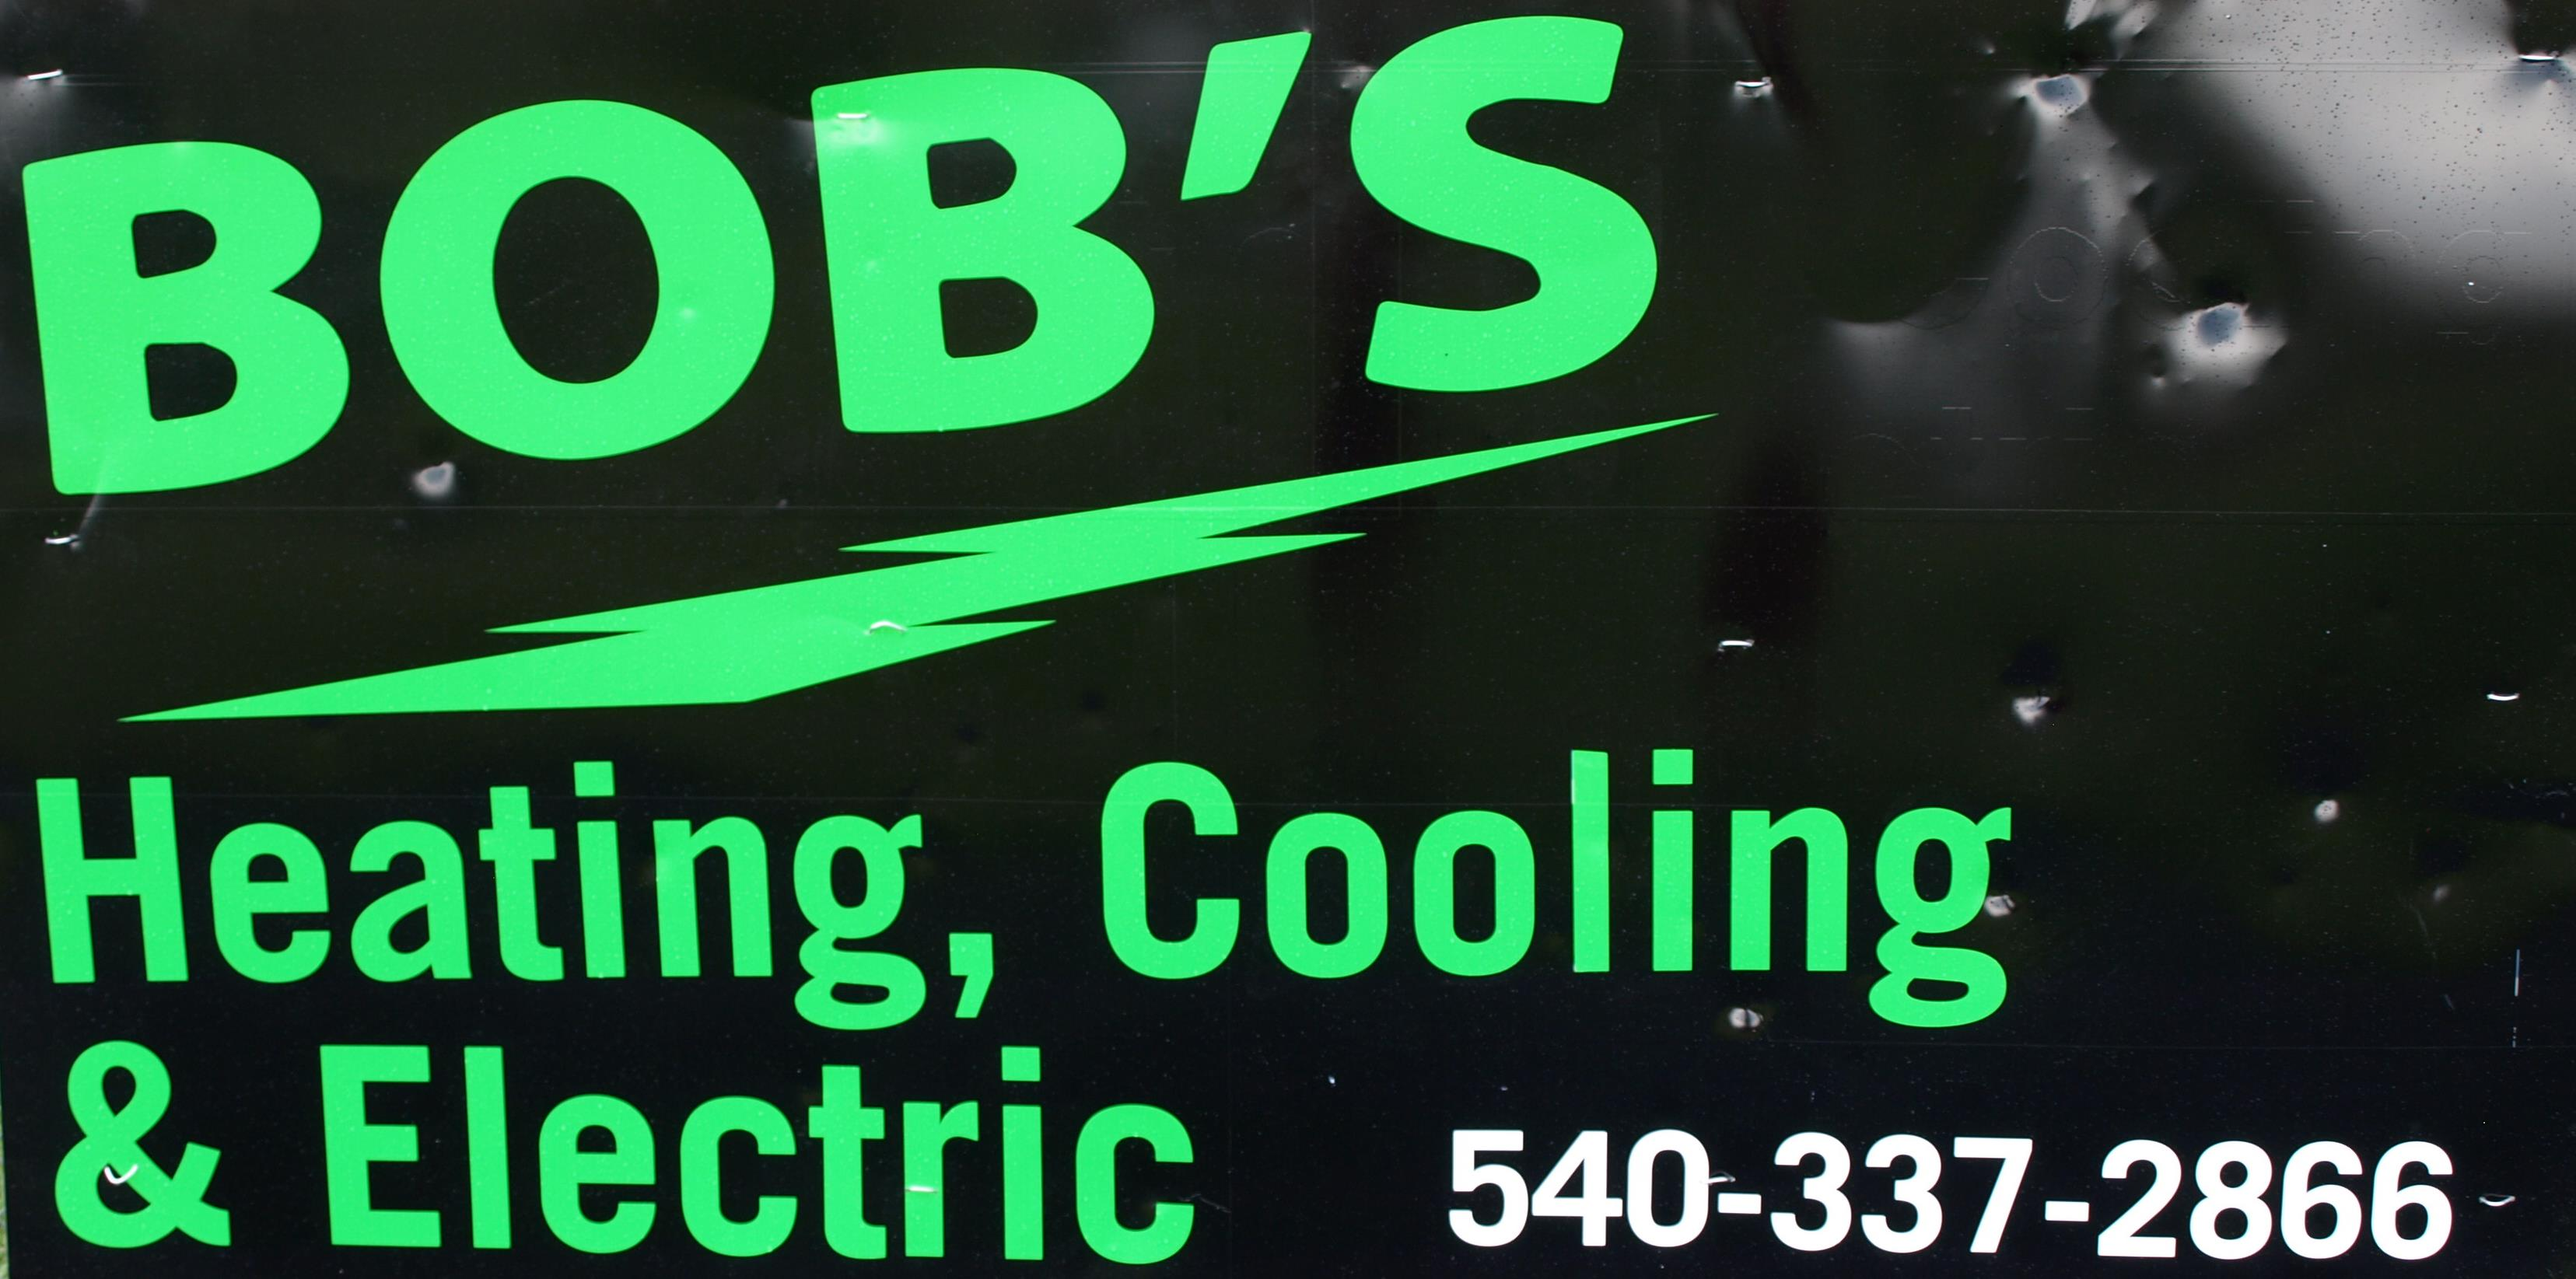 Bob's Heating, Cooling & Electric